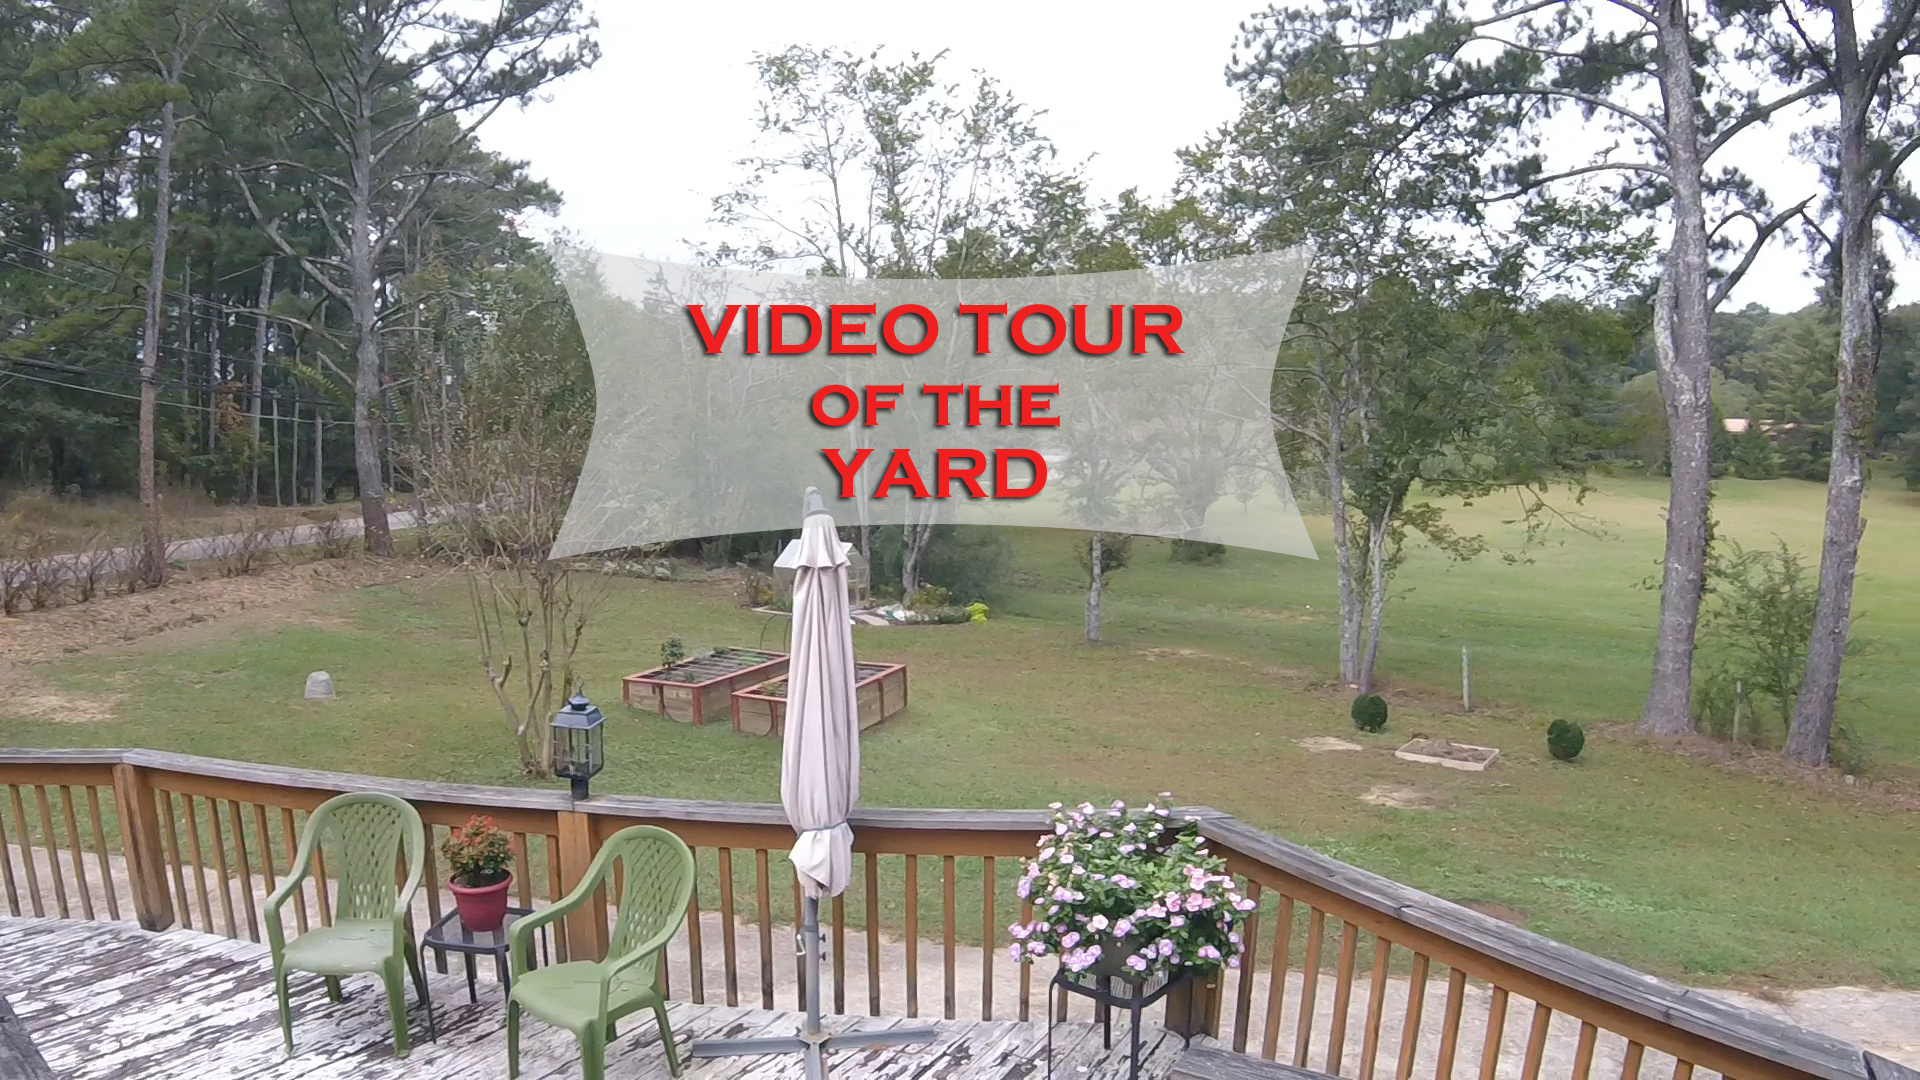 Video Tour of the Yard